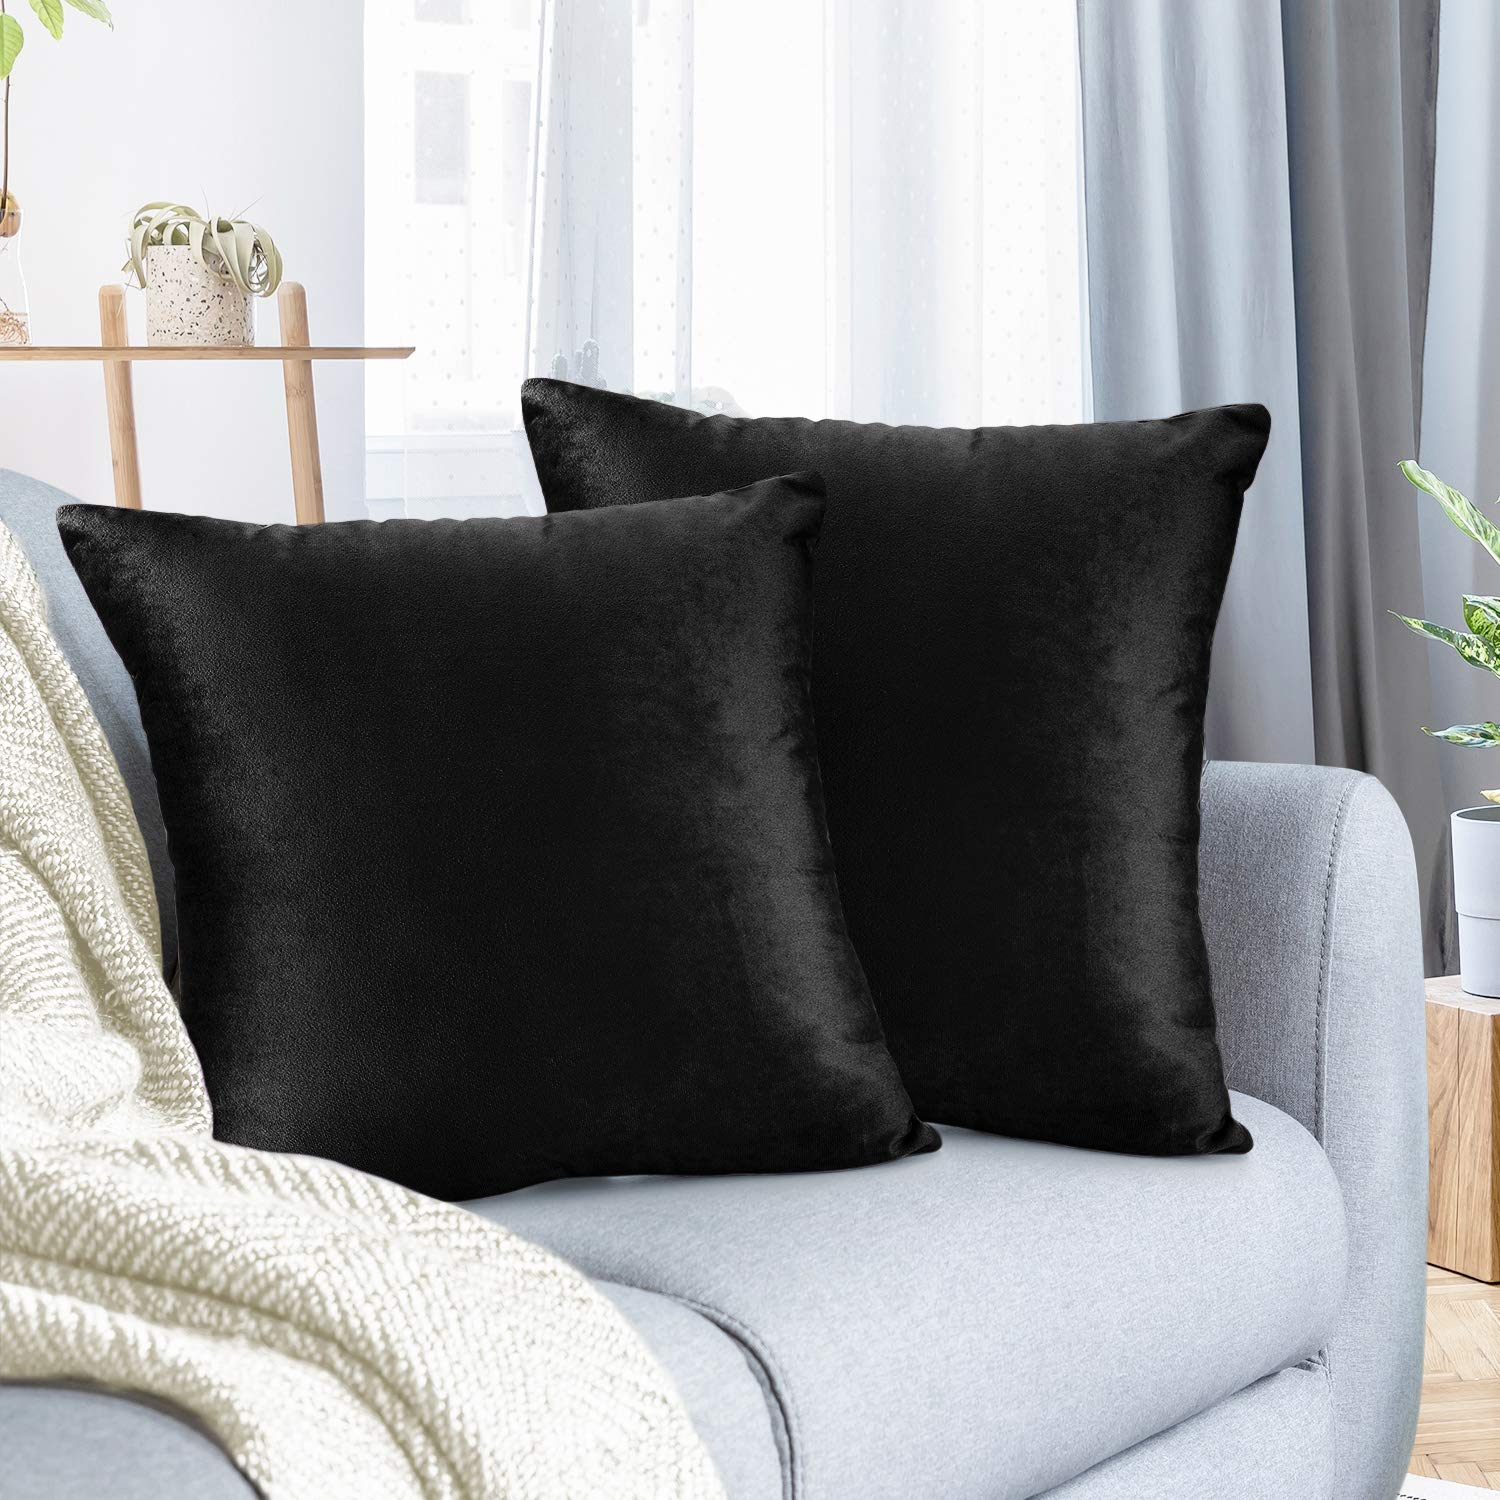 """Nestl Bedding Throw Pillow Cover 26"""" x 26"""" Soft Square Decorative Throw Pillow Covers Cozy Velvet Cushion Case for Sofa Couch Bedroom, Set of 2, Black"""